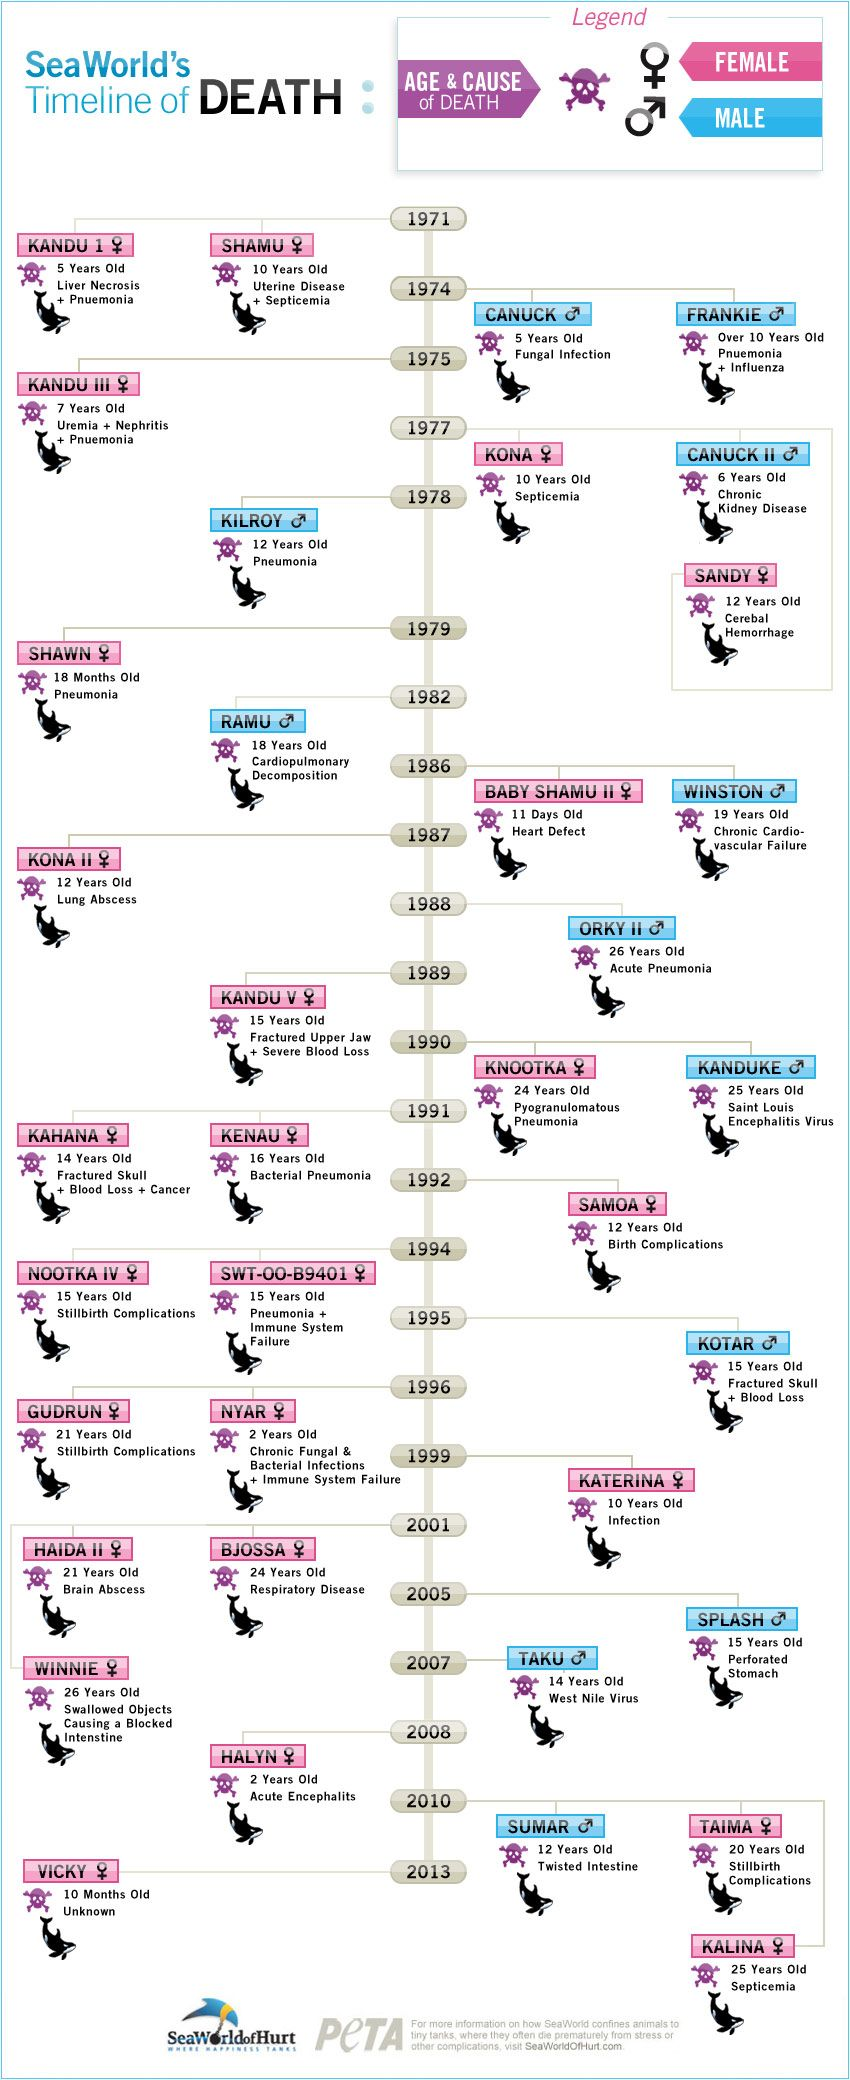 seaworld's timeline of death | infographics and flow charts | sea